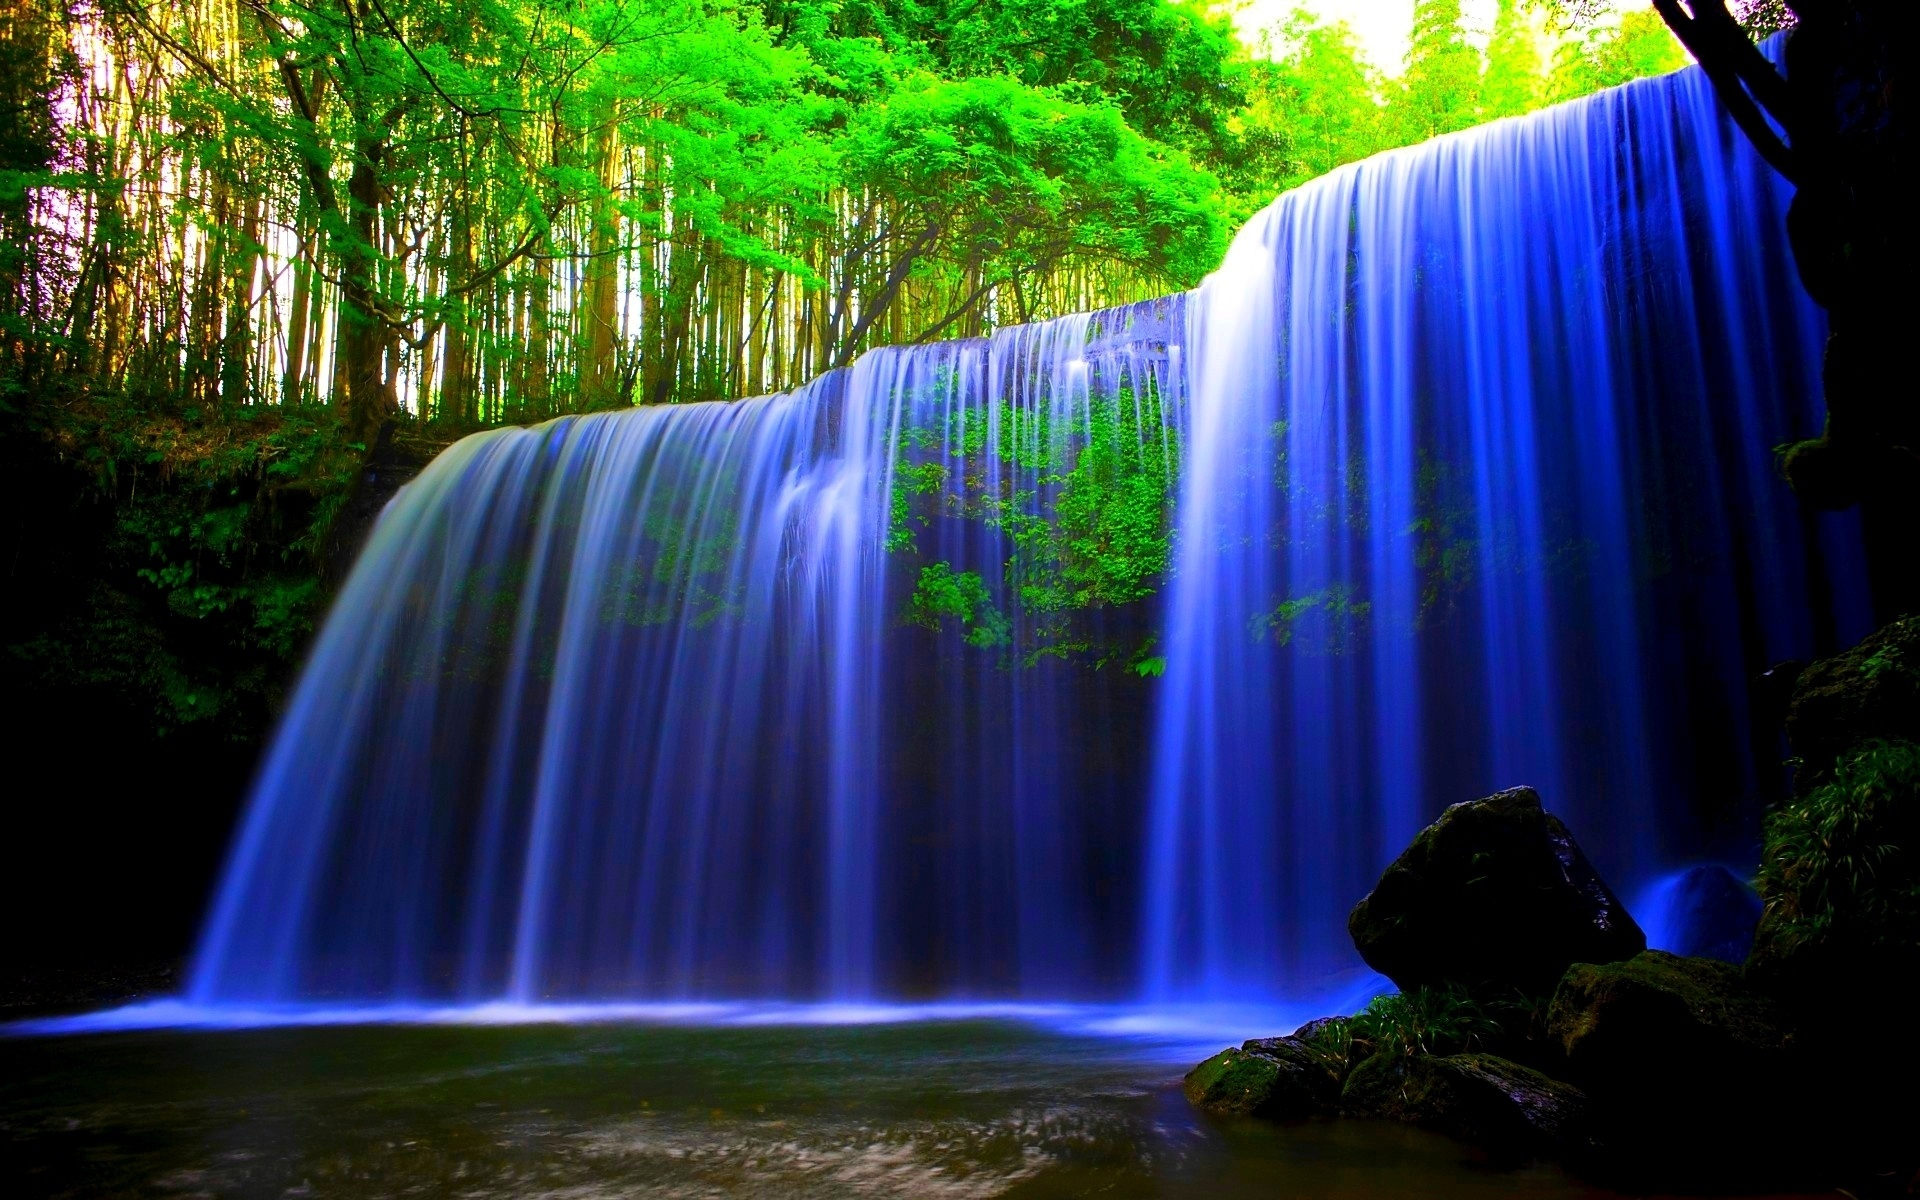 wallpaper download for pc which is under the waterfall wallpapers 1920x1200